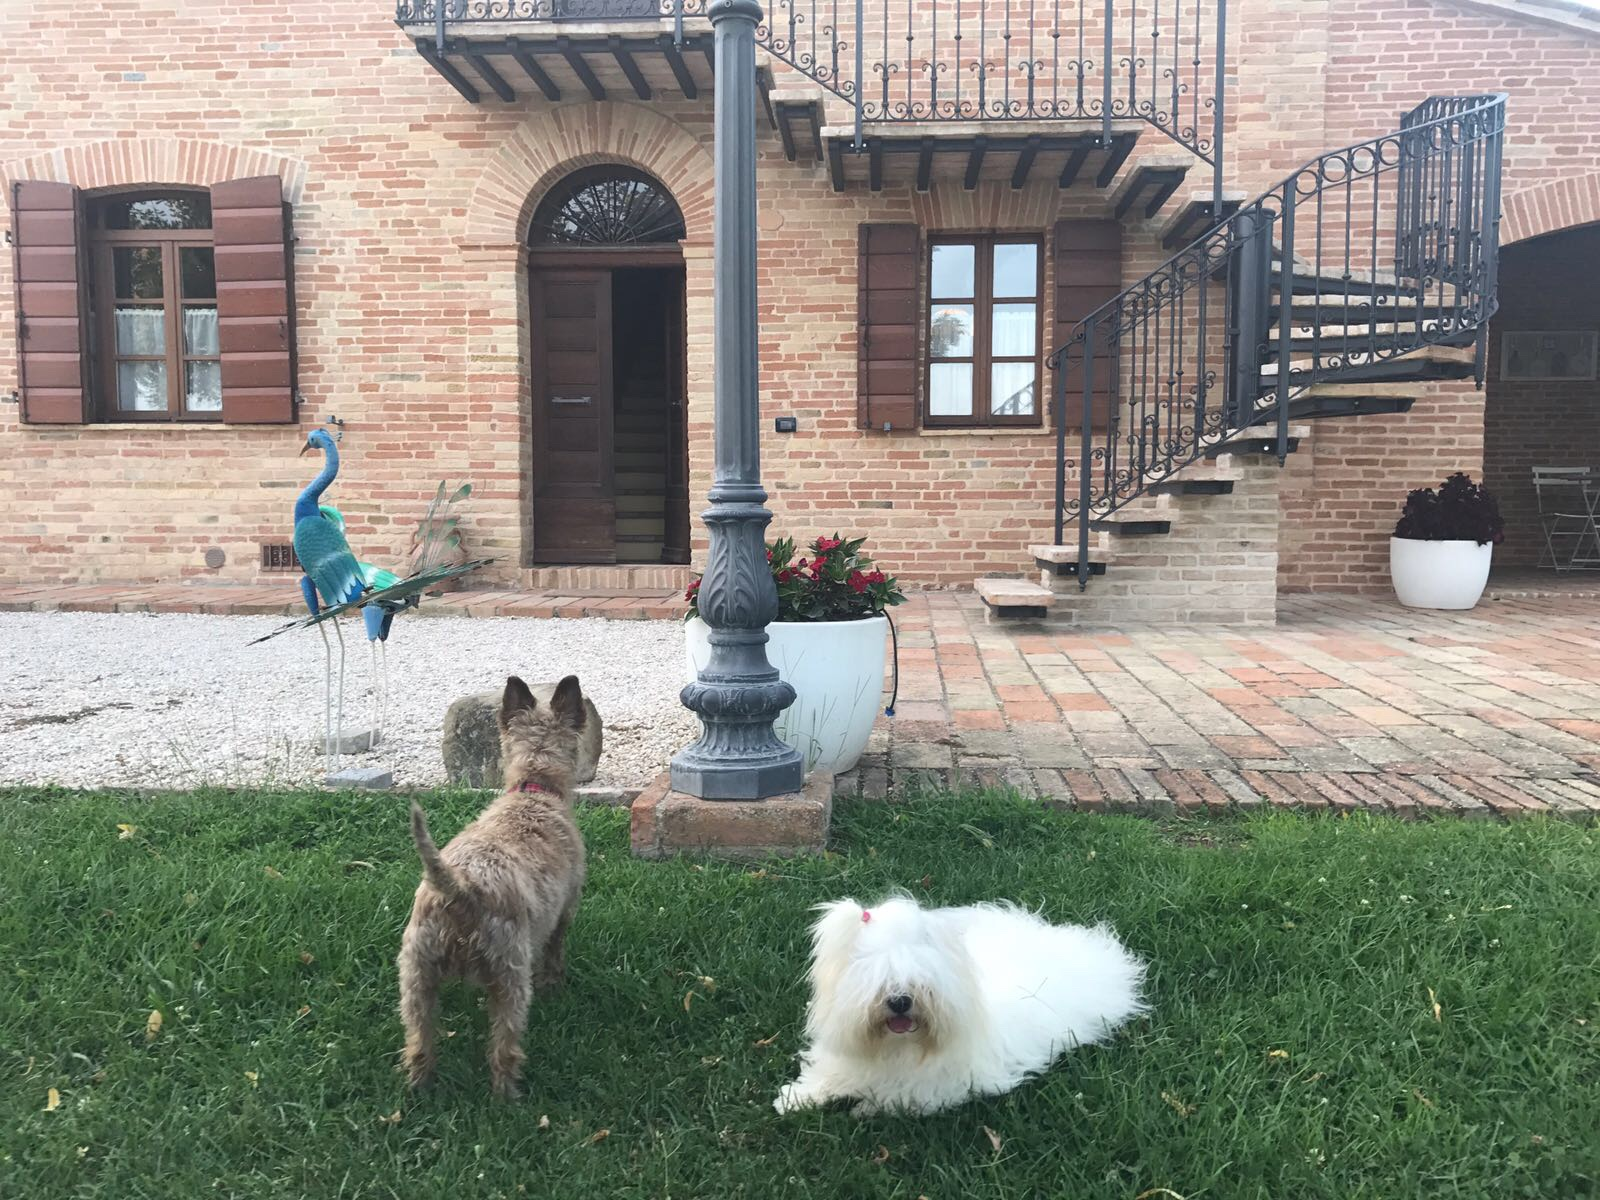 Villa Pedossa, Marche, Italy - suitable for canine friends